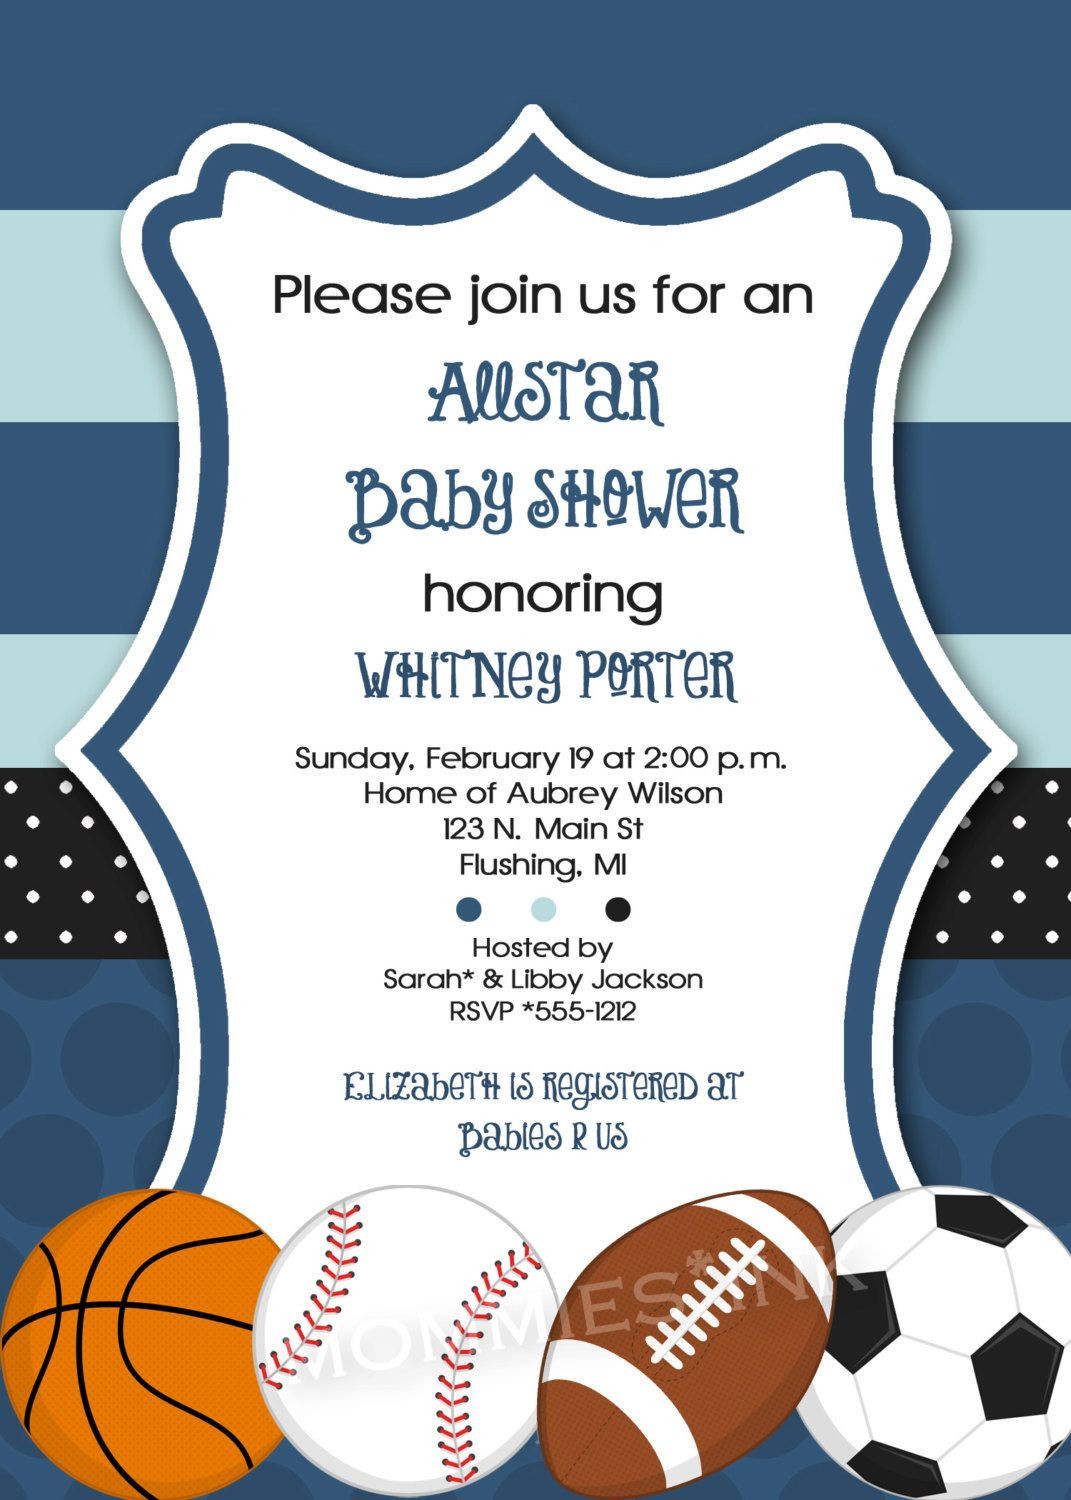 Best ideas about Sports Themed Birthday Invitations . Save or Pin Mod Allstar Sports Theme Baby Shower Invitation All Star Now.